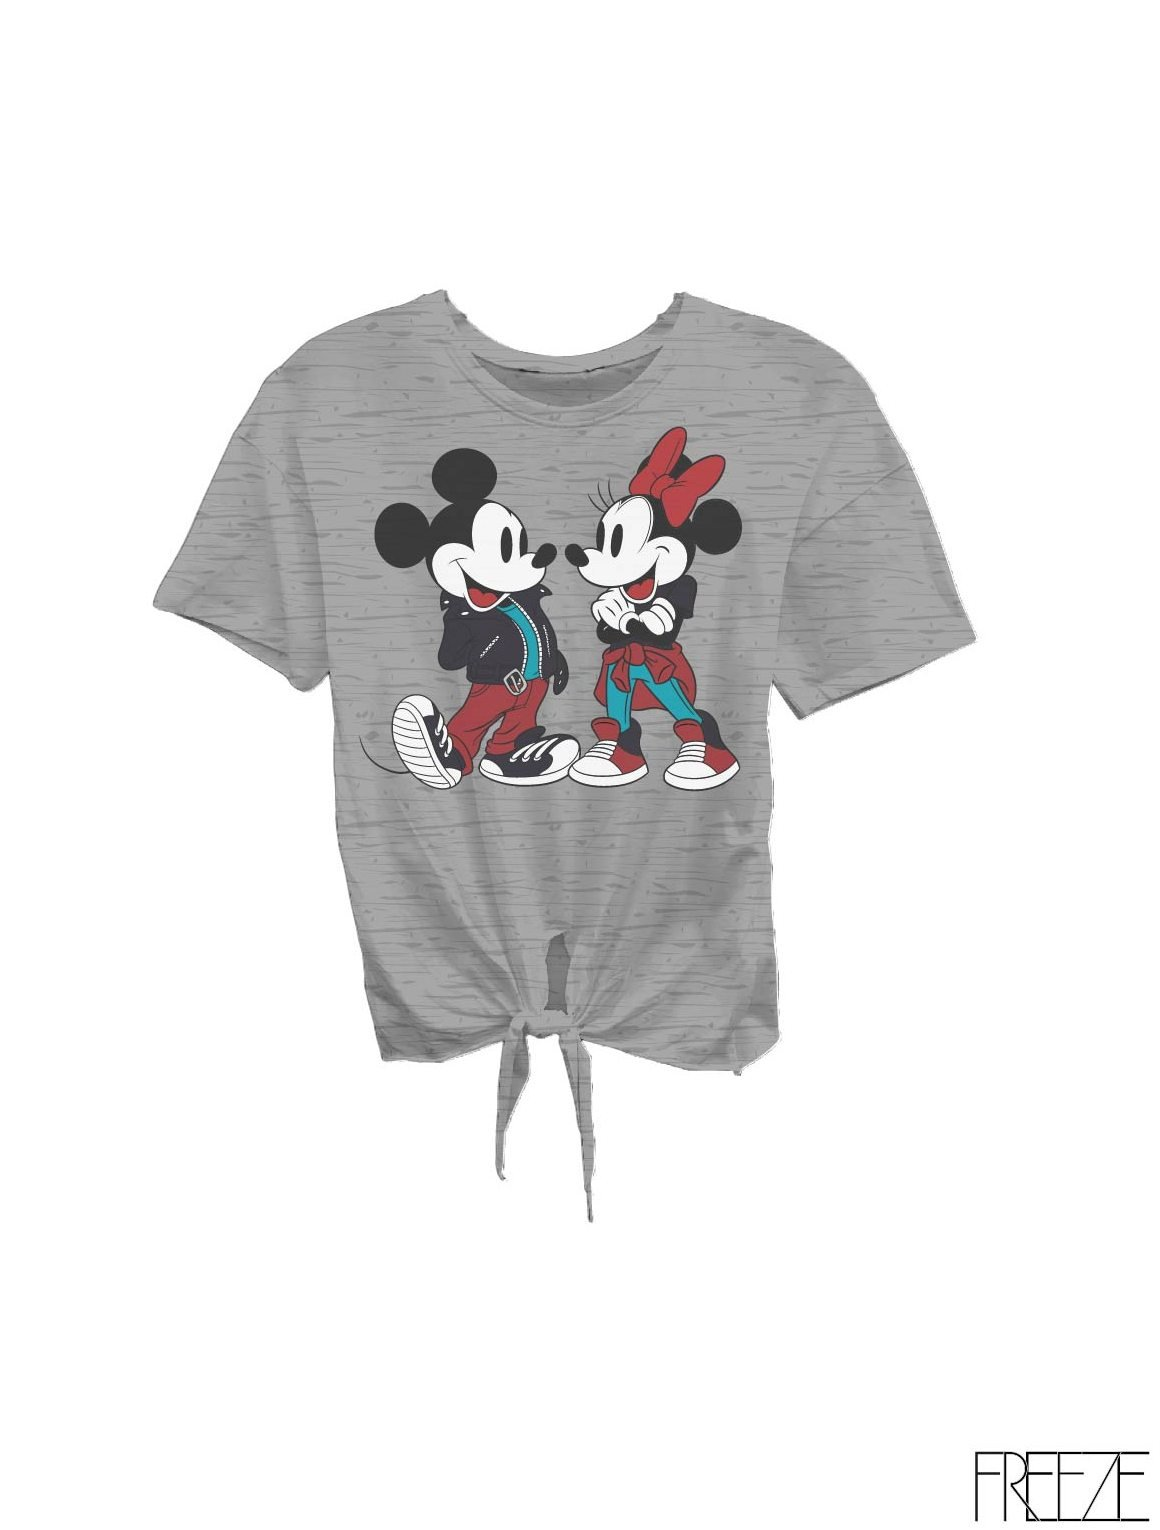 Freeze Tie Front Jersey Fashion Graphic T-Shirt for Women- Cool and Comfy, Rounded Neckline, Short Sleeves Styled with a Flirty Tie-Front Hem, Finished with a Perfect Length, Available in All Sizes Grey Heather Medium